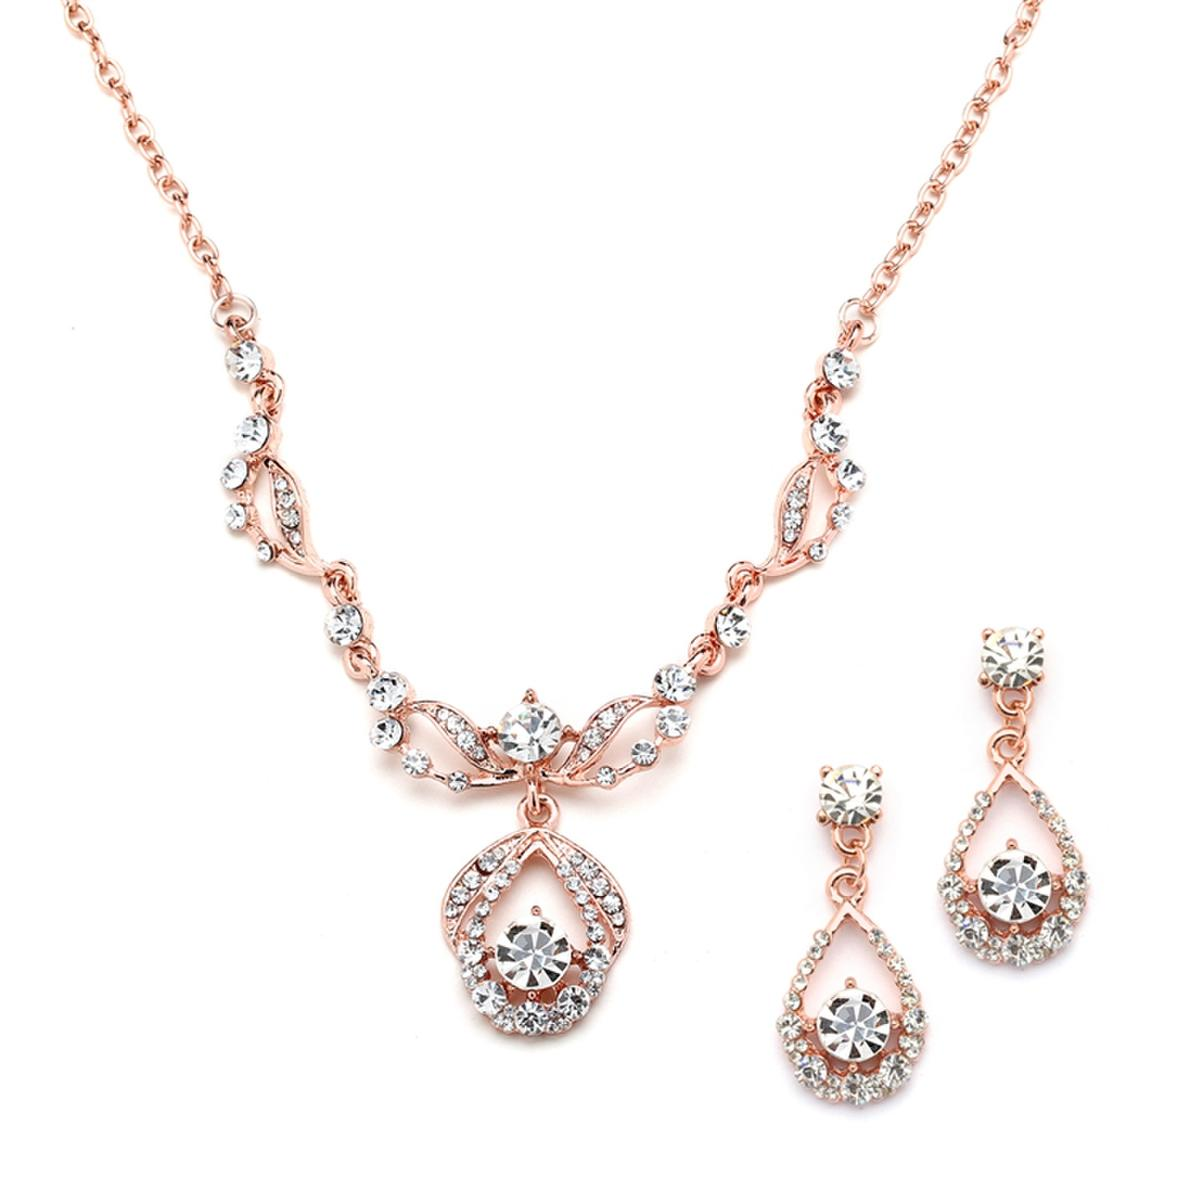 MARIELL - Vintage Crystal Necklace and Earrings Set